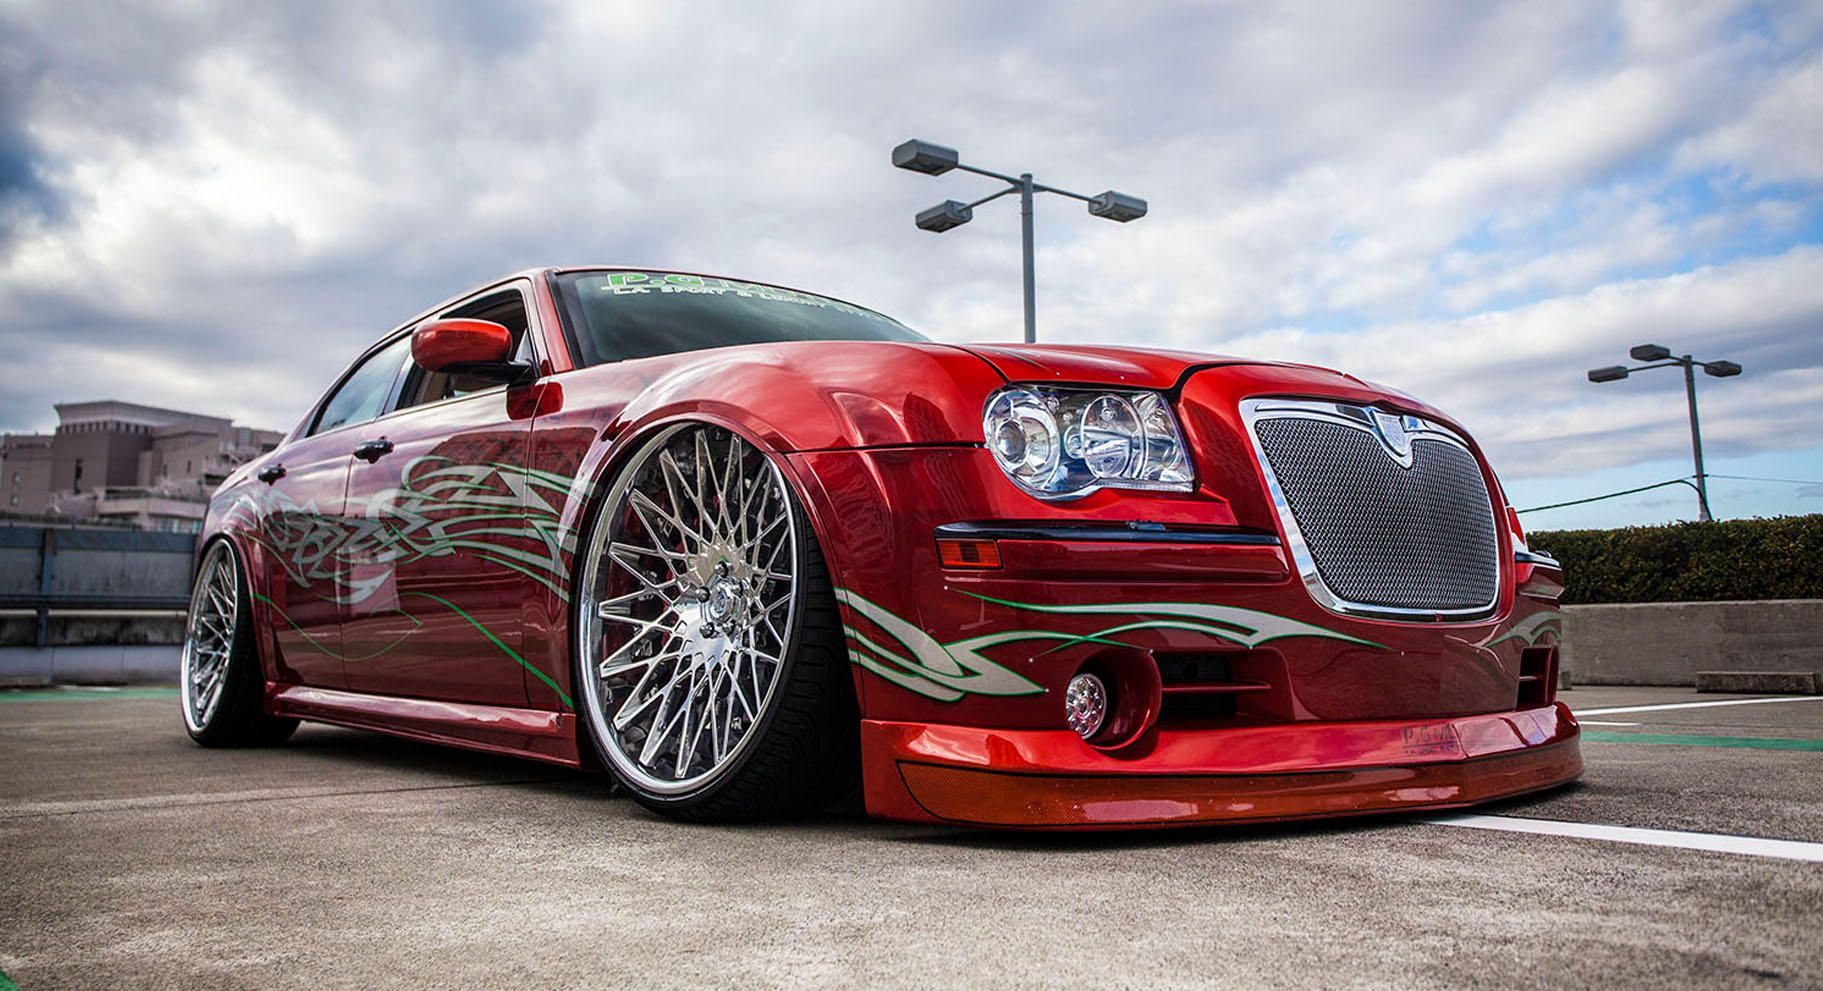 lexani wheels the leader in custom luxury wheels chrysler 300c with chrome cs monza wheels. Black Bedroom Furniture Sets. Home Design Ideas